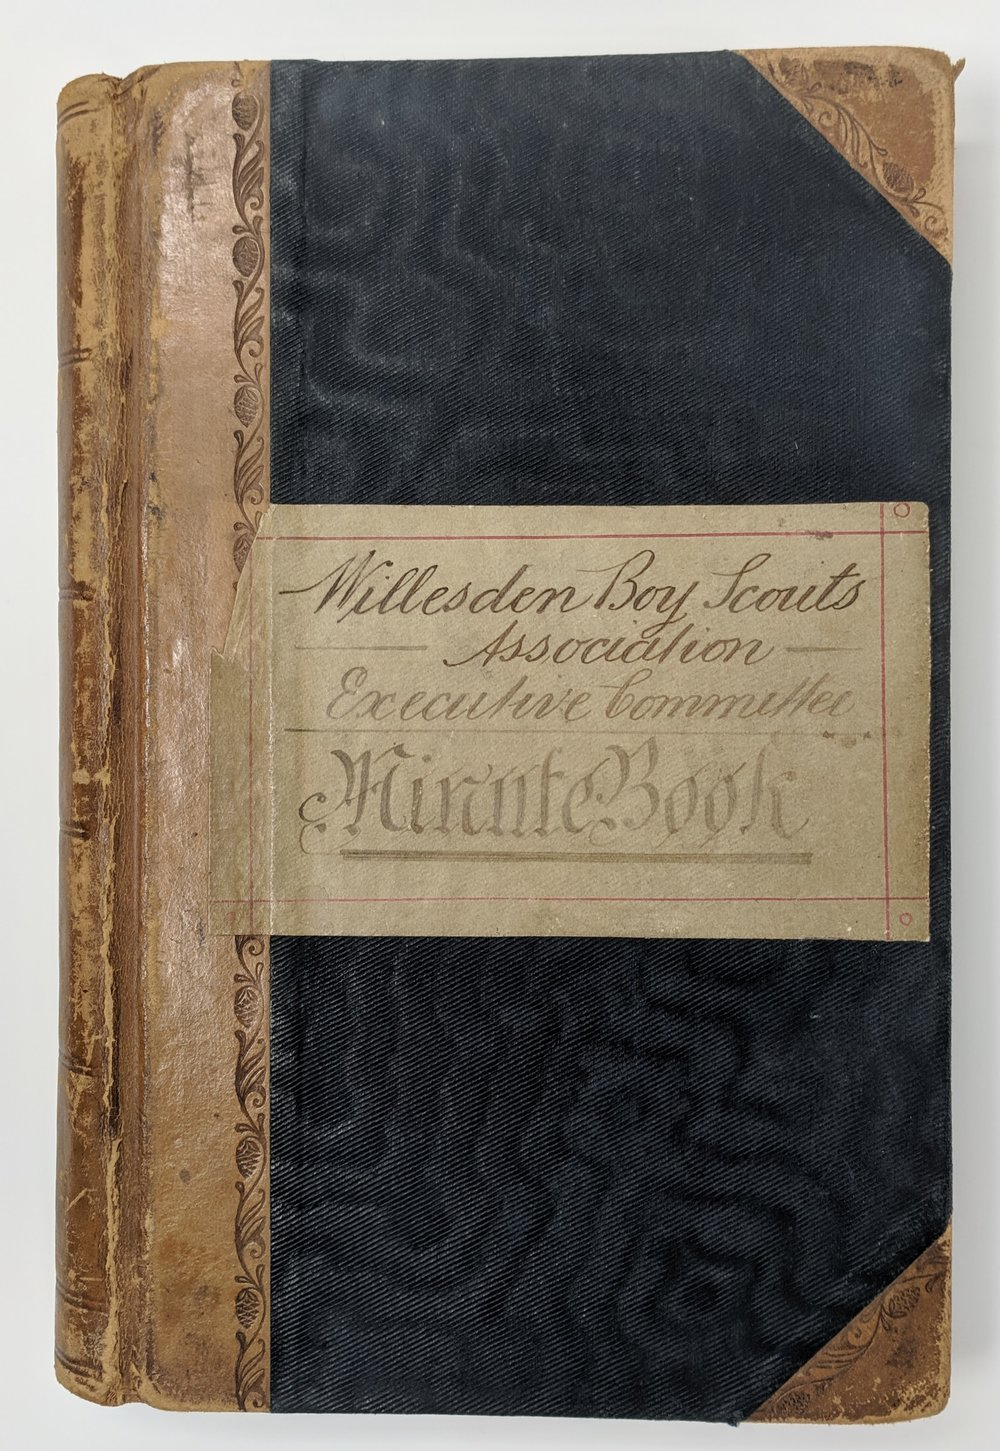 The Cover of the First Minute Book of the Willesden Boy Scout Association